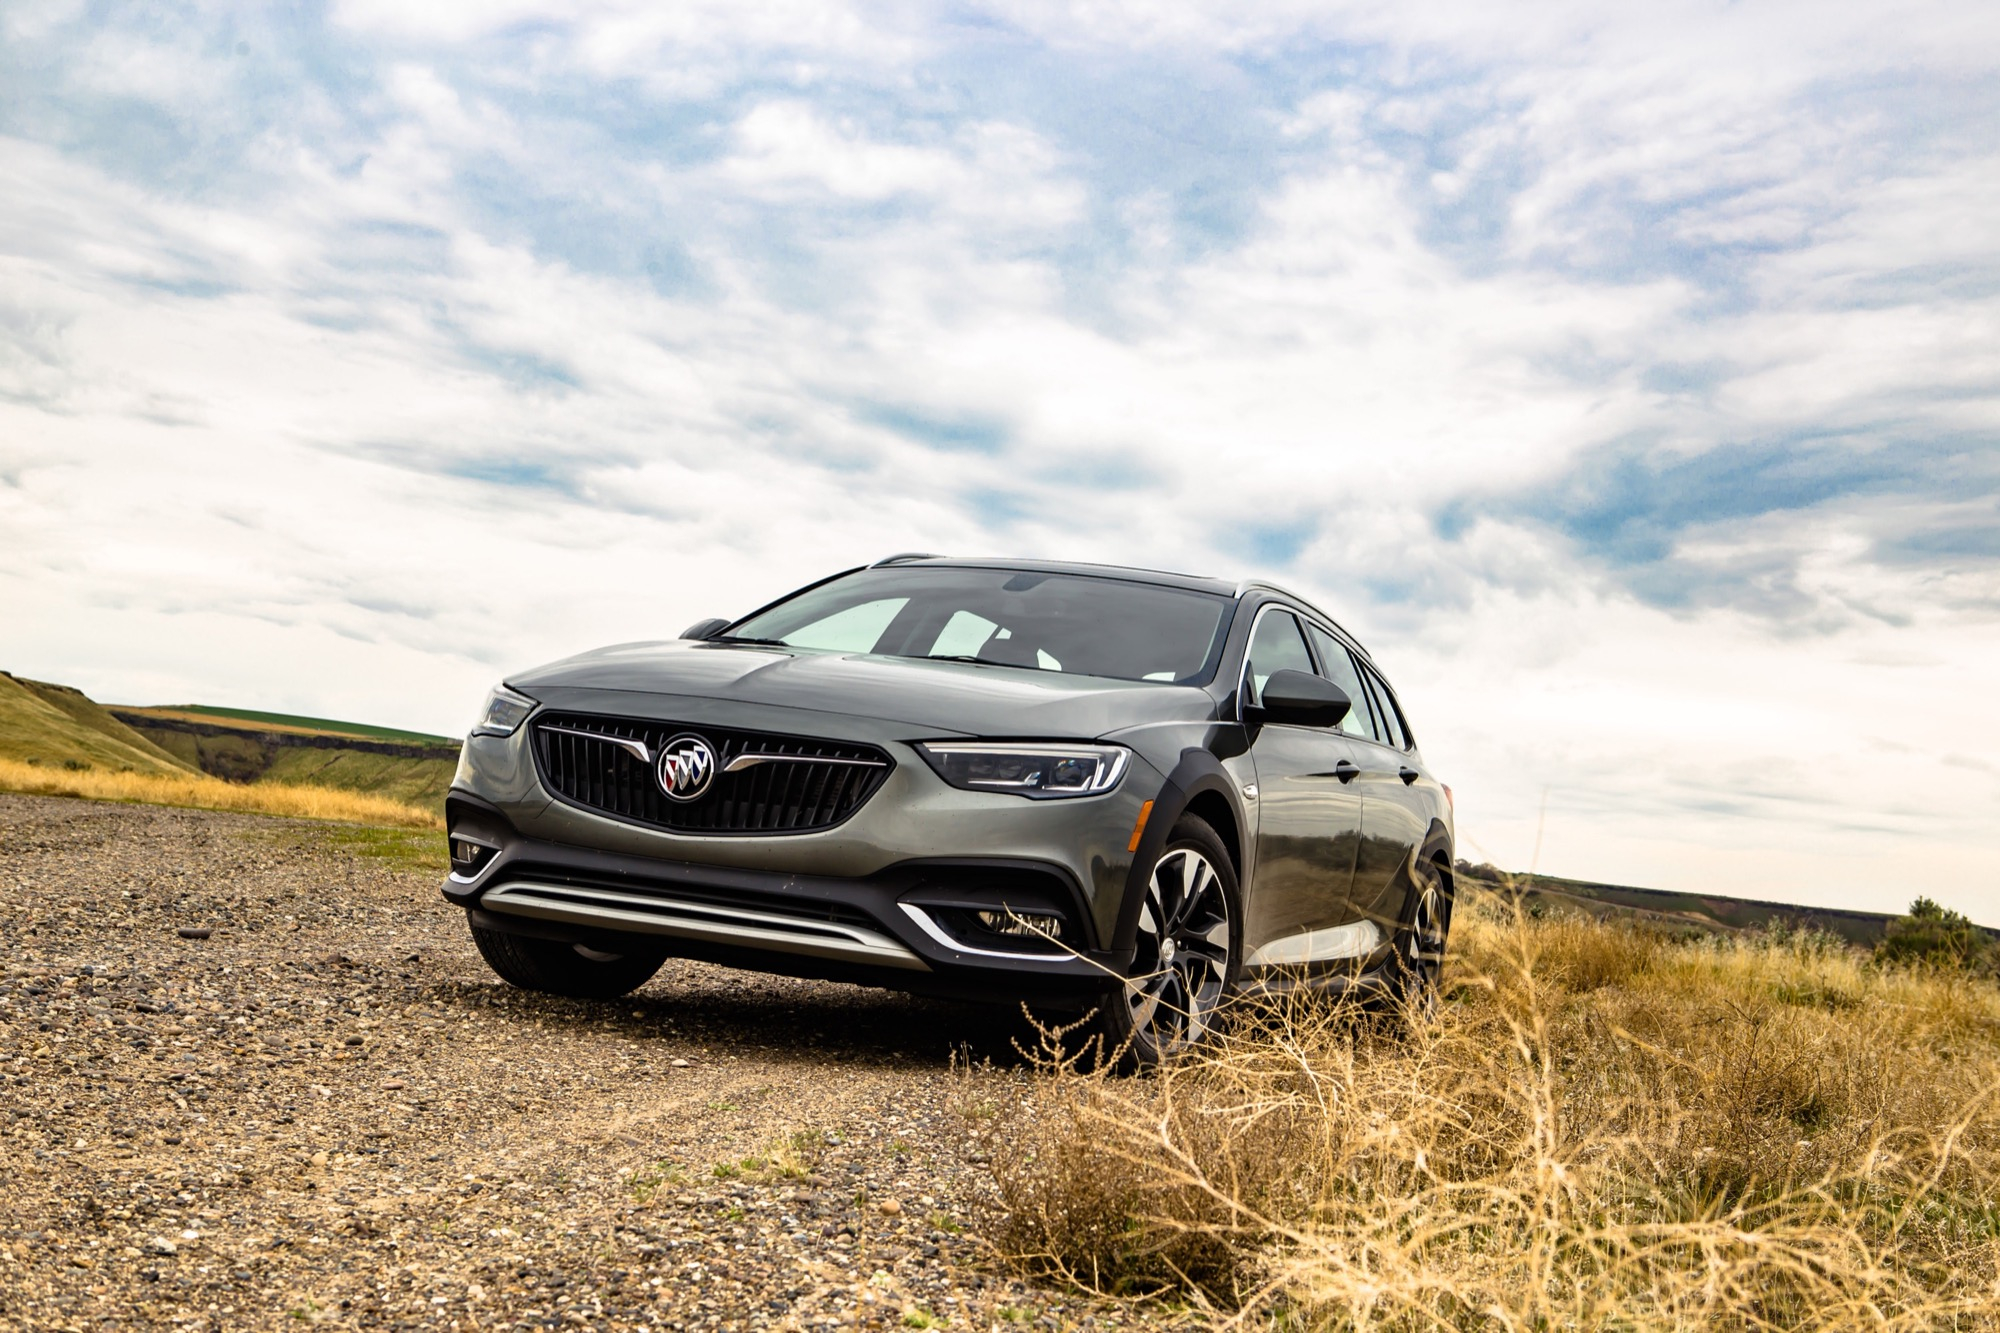 Does Buick Even Want To Sell The Regal Tourx? | Gm Authority New 2022 Buick Regal Tourx Price, Lease, Awd